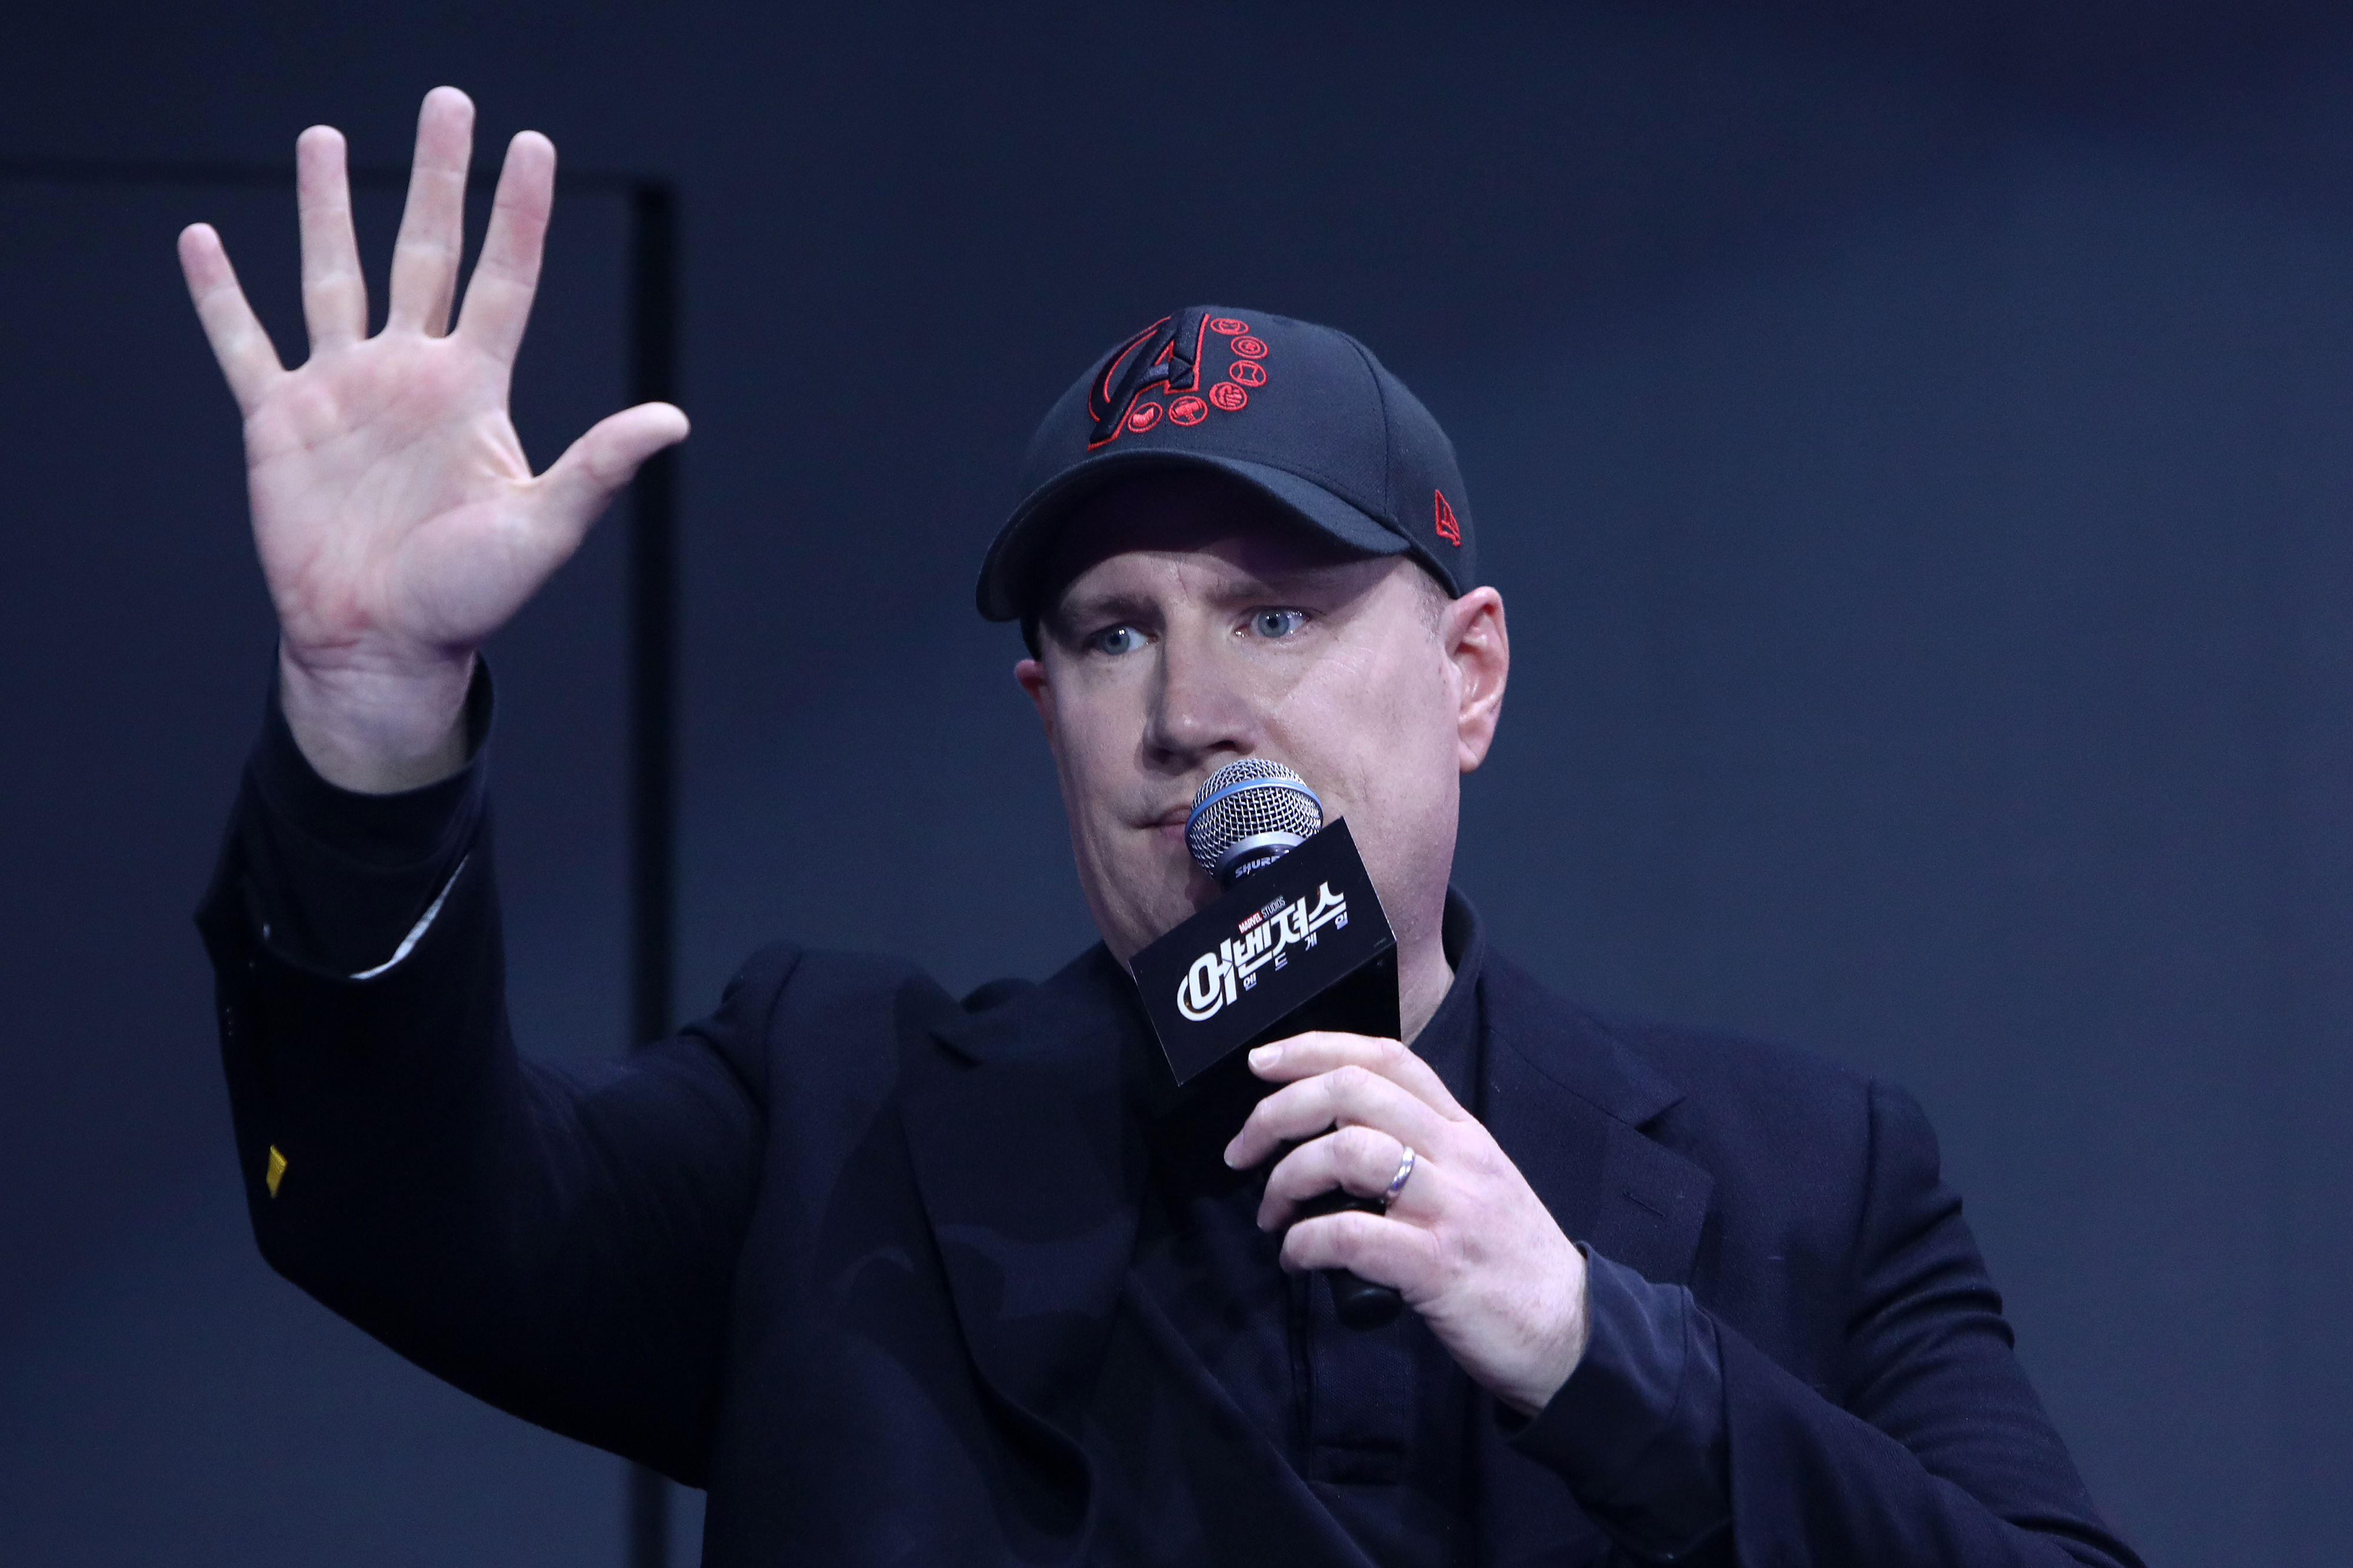 "Kevin Feige attends a fan event for Marvel Studios's ""Avengers: Endgame"" this week in Seoul, South Korea. (Chung Sung-Jun/Getty Images for Disney)"